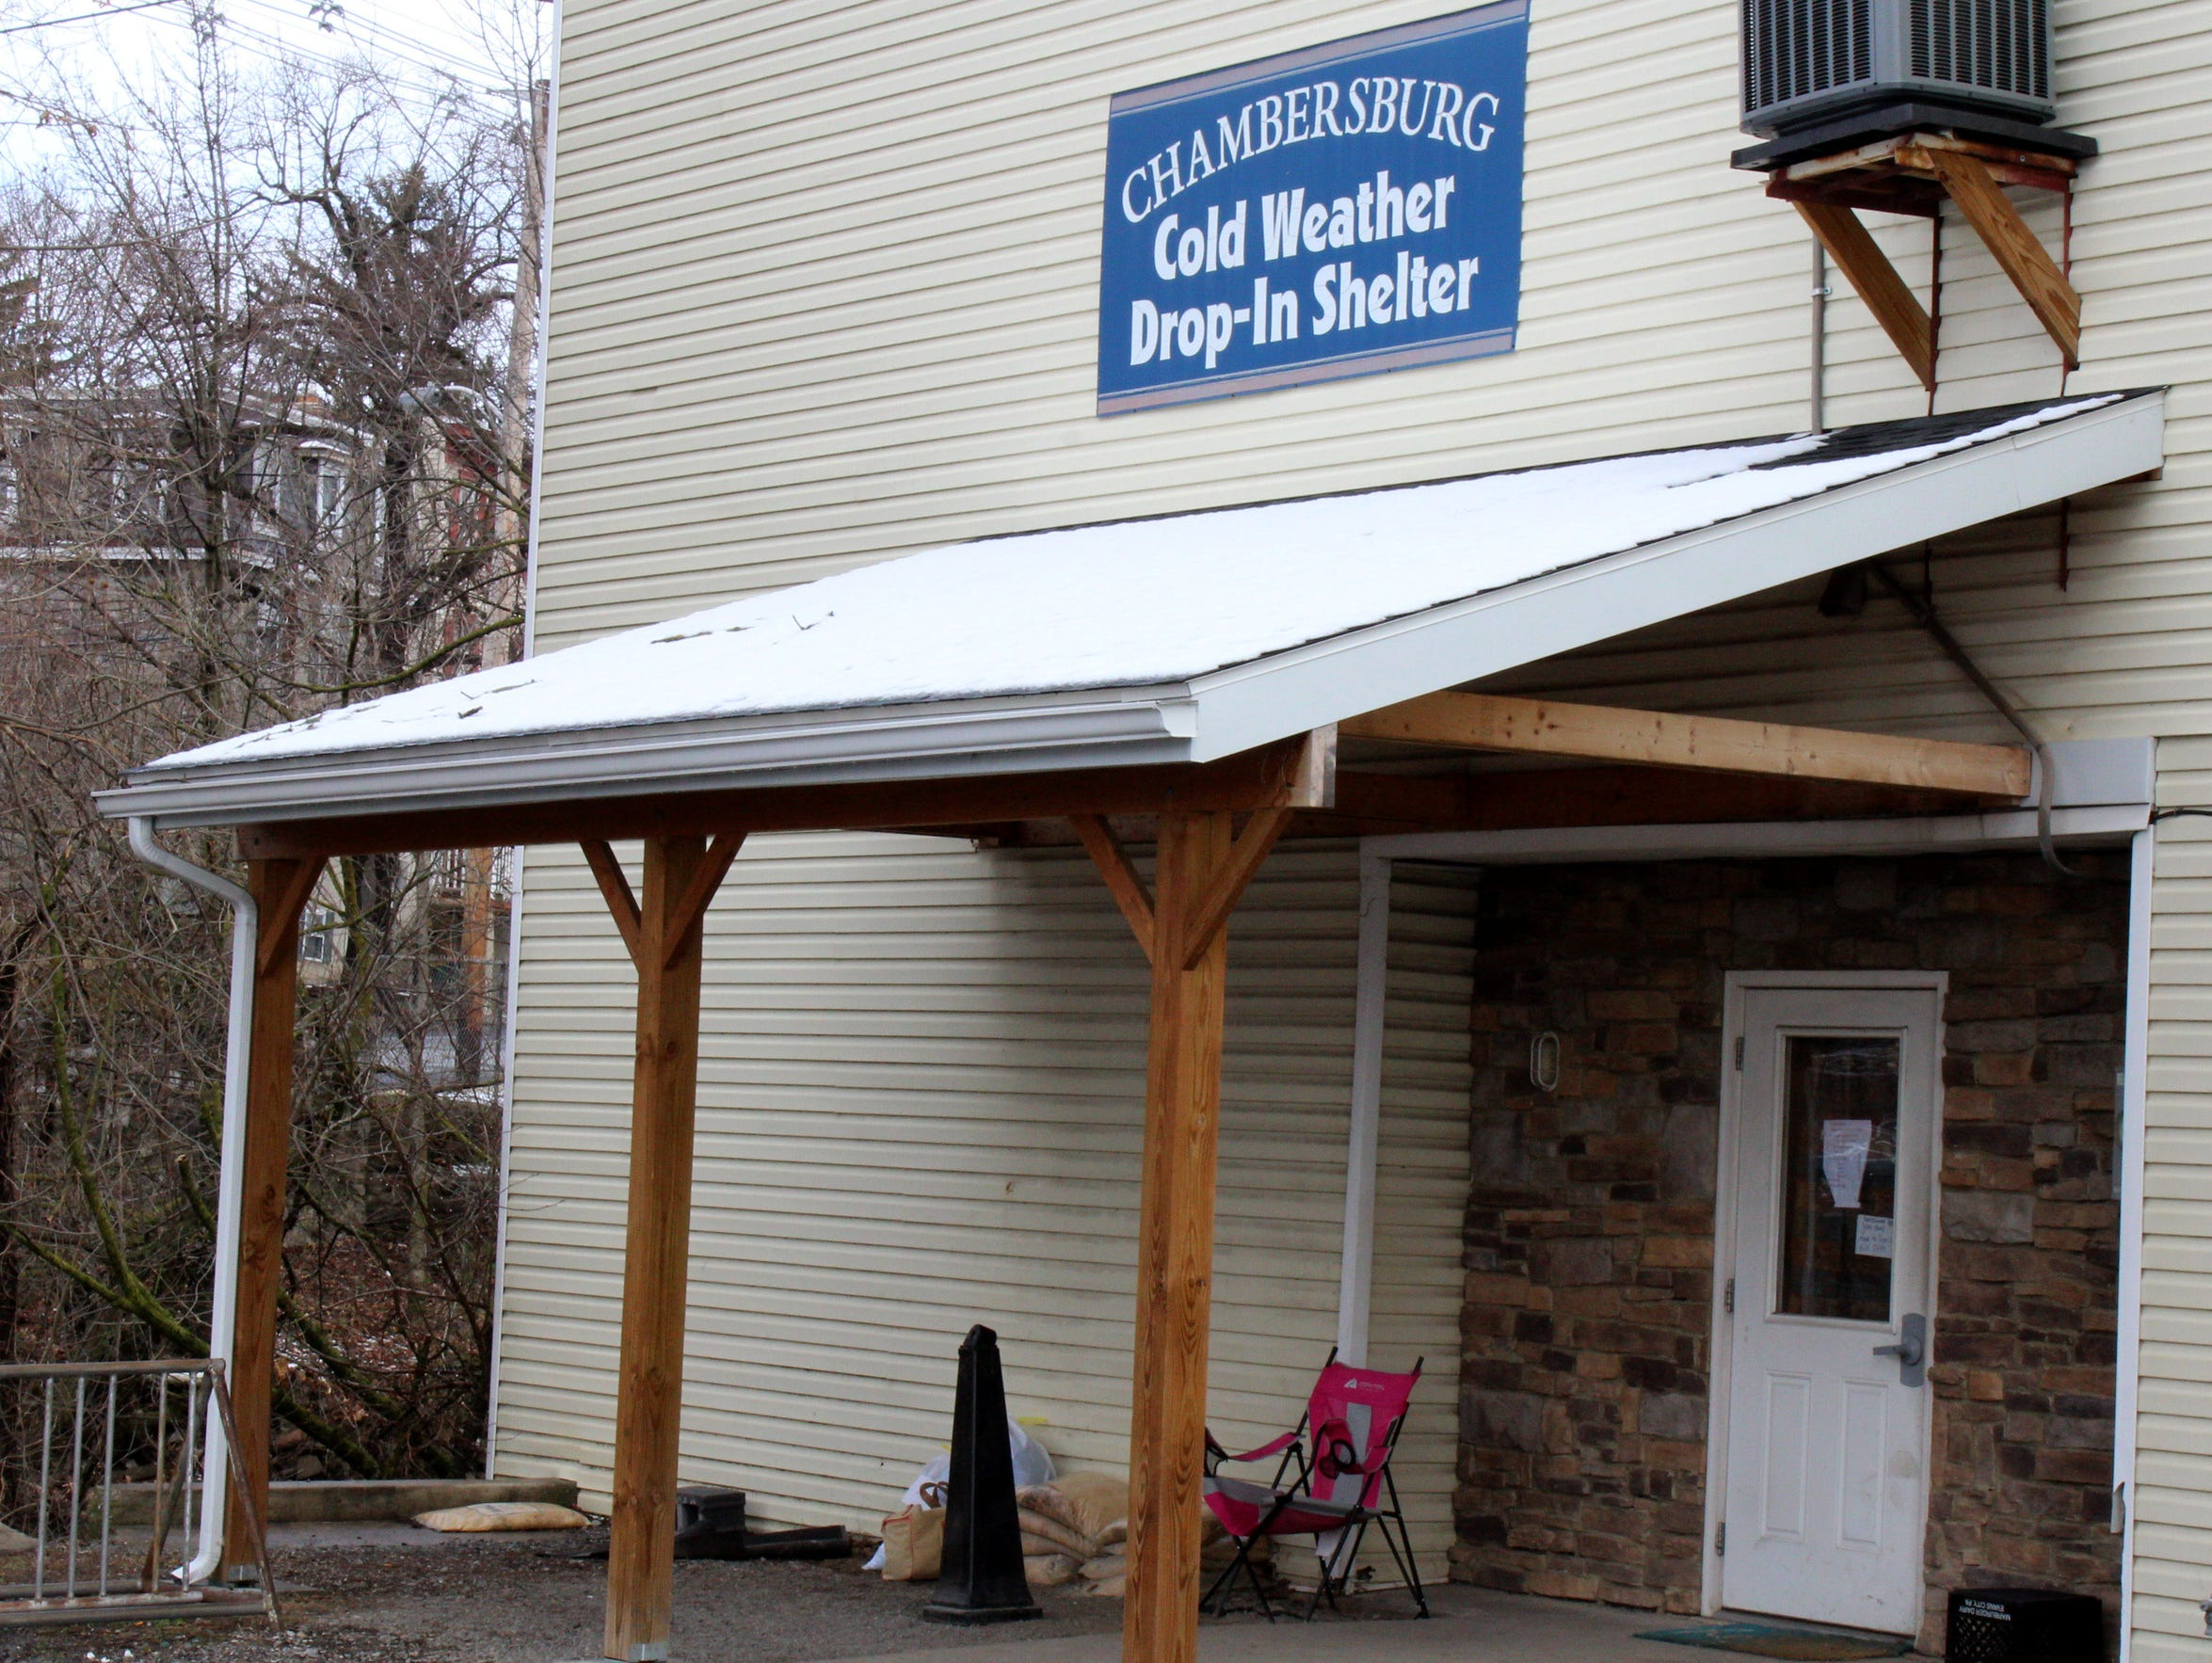 The Chambersburg Cold Weather Drop-In Shelter closed